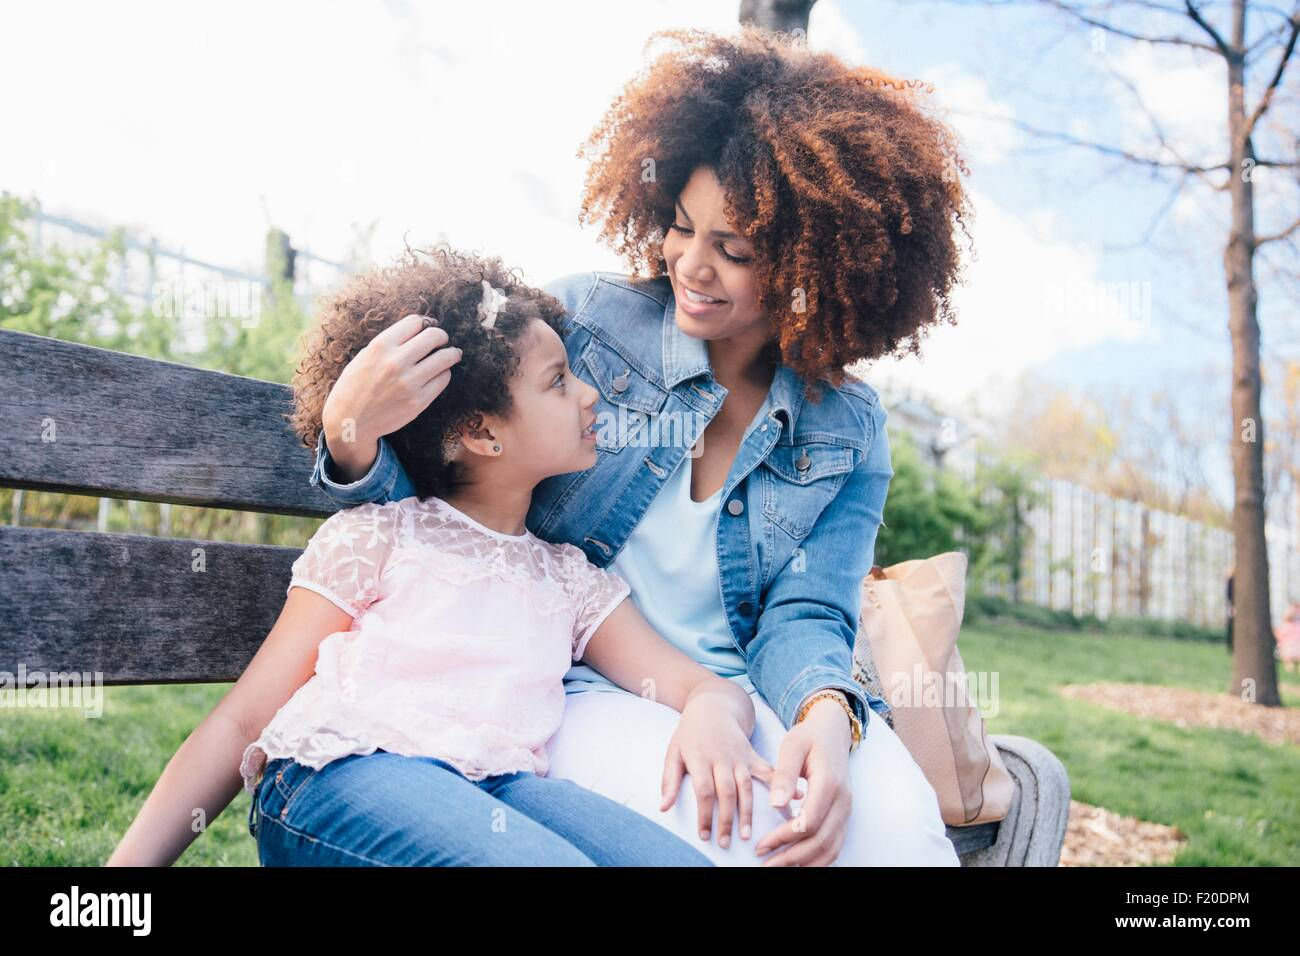 Mother with arm around daughter sitting on park bench face to face - Stock Image